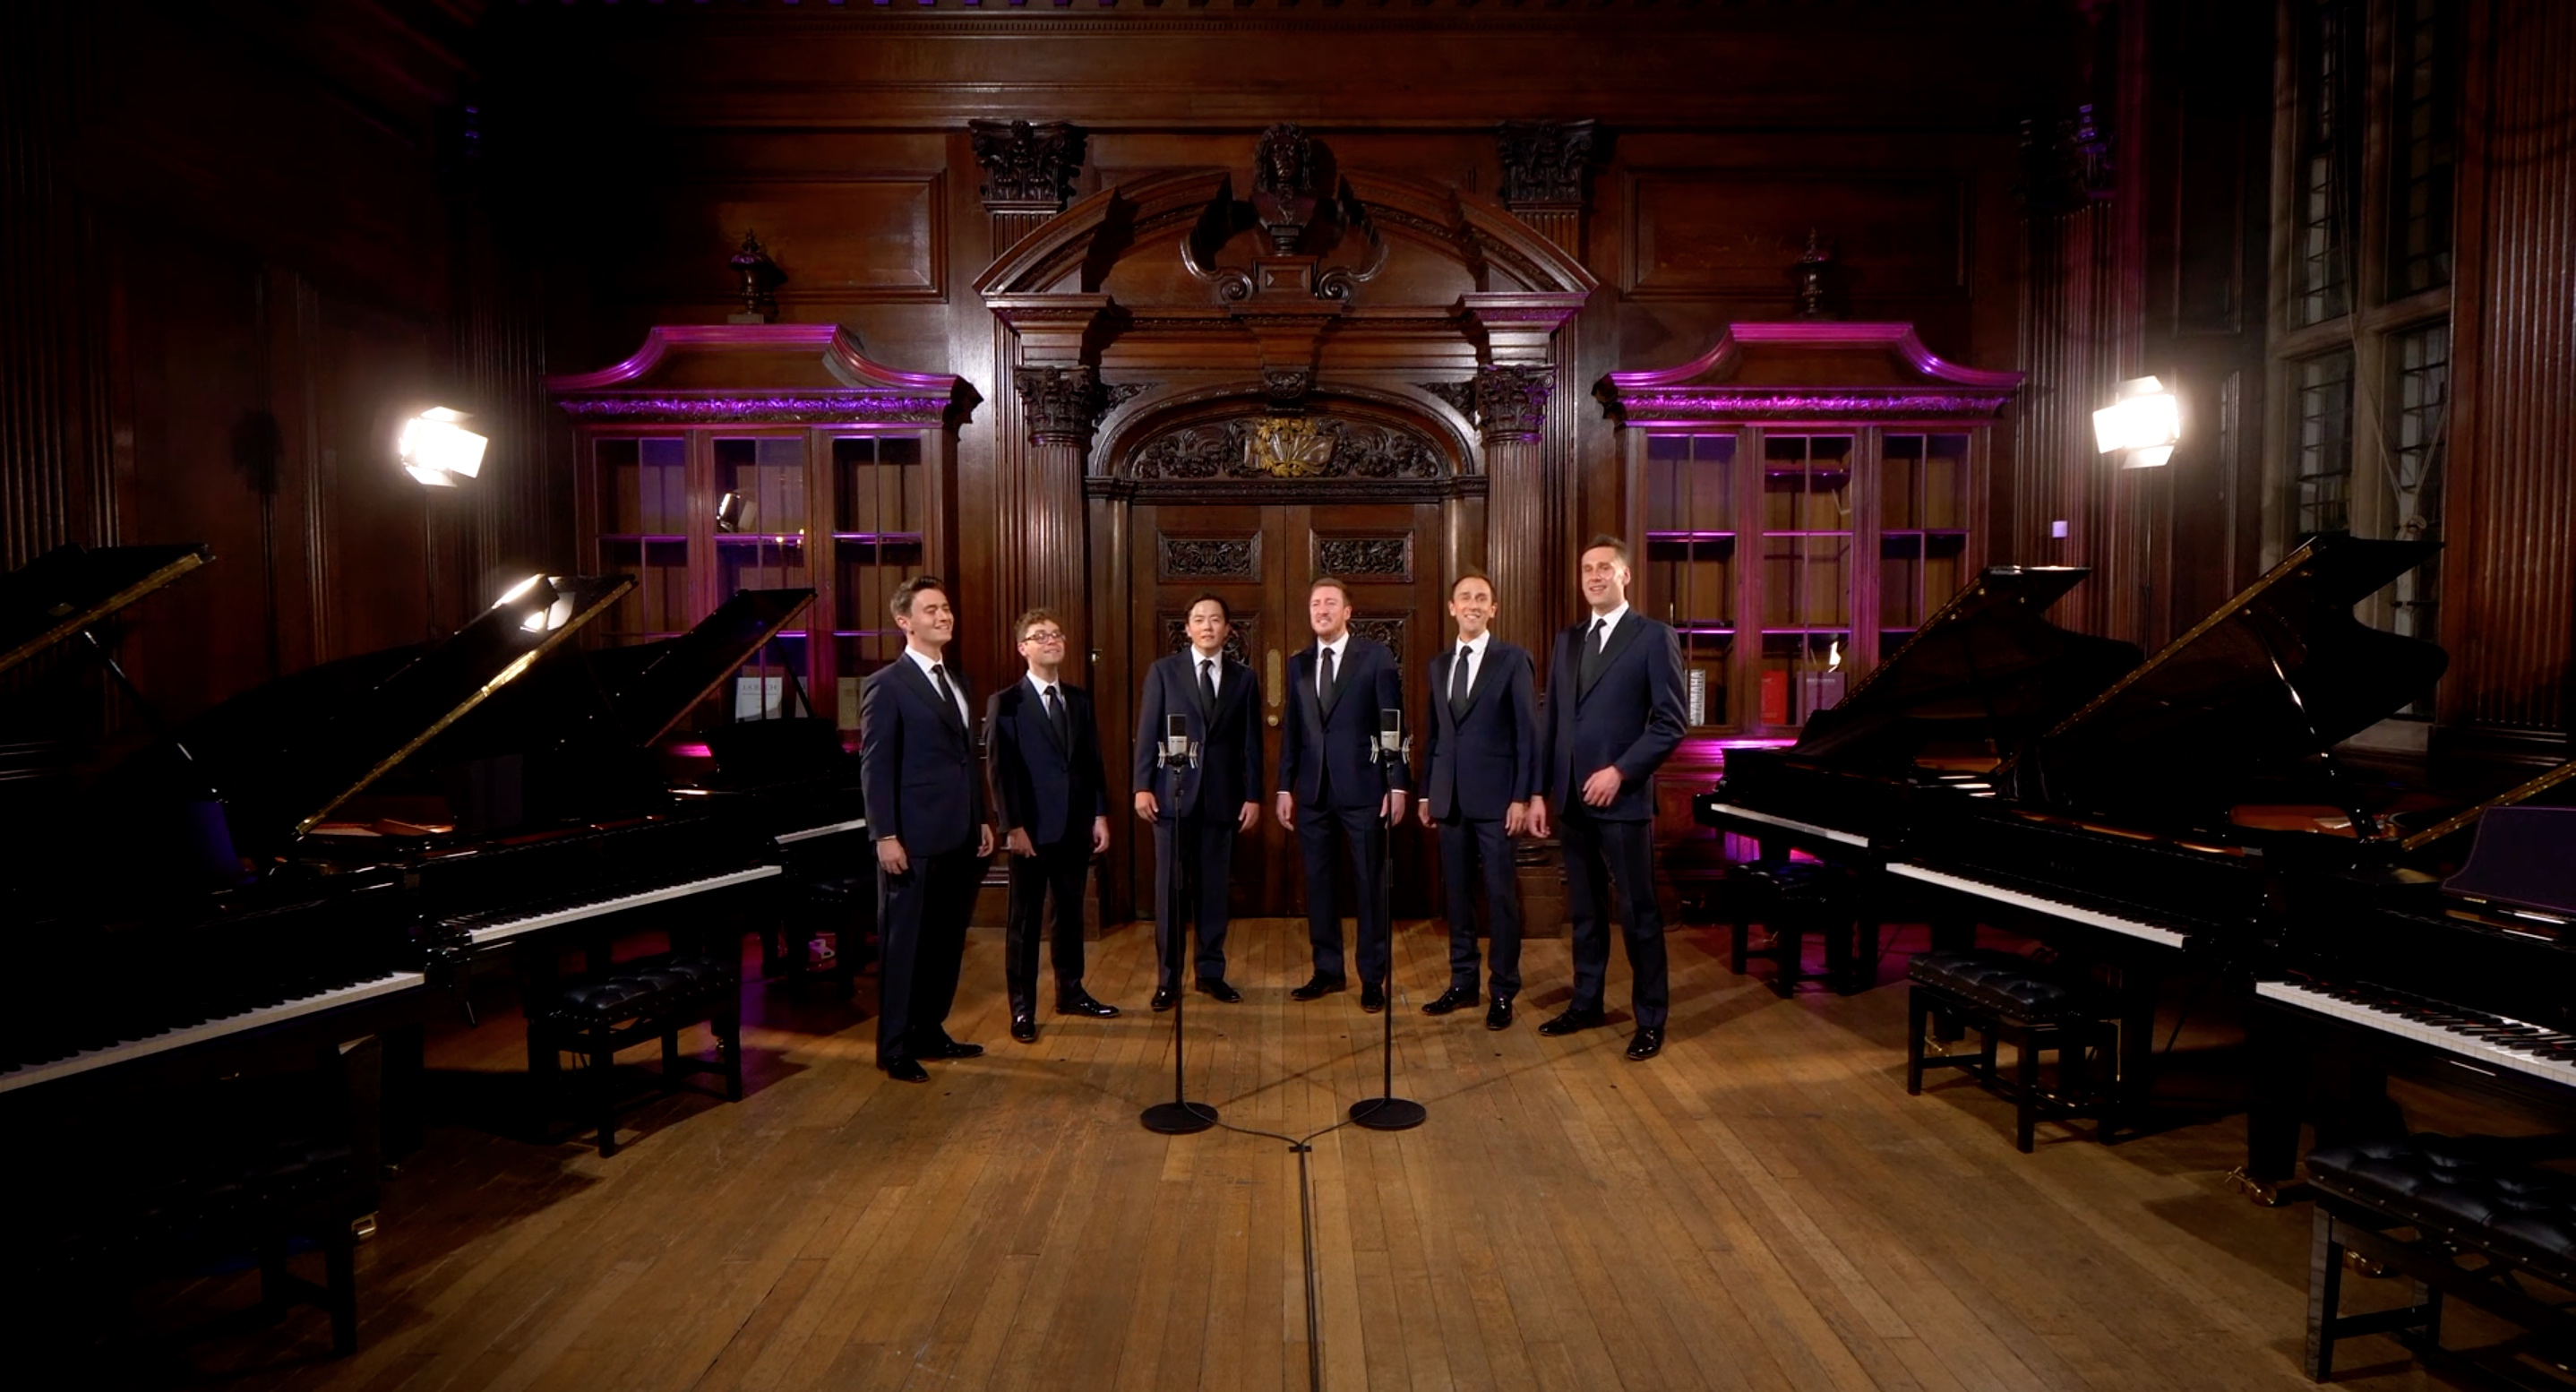 The King's Singers Online Concert Finding Harmony 'Heiwa' 011